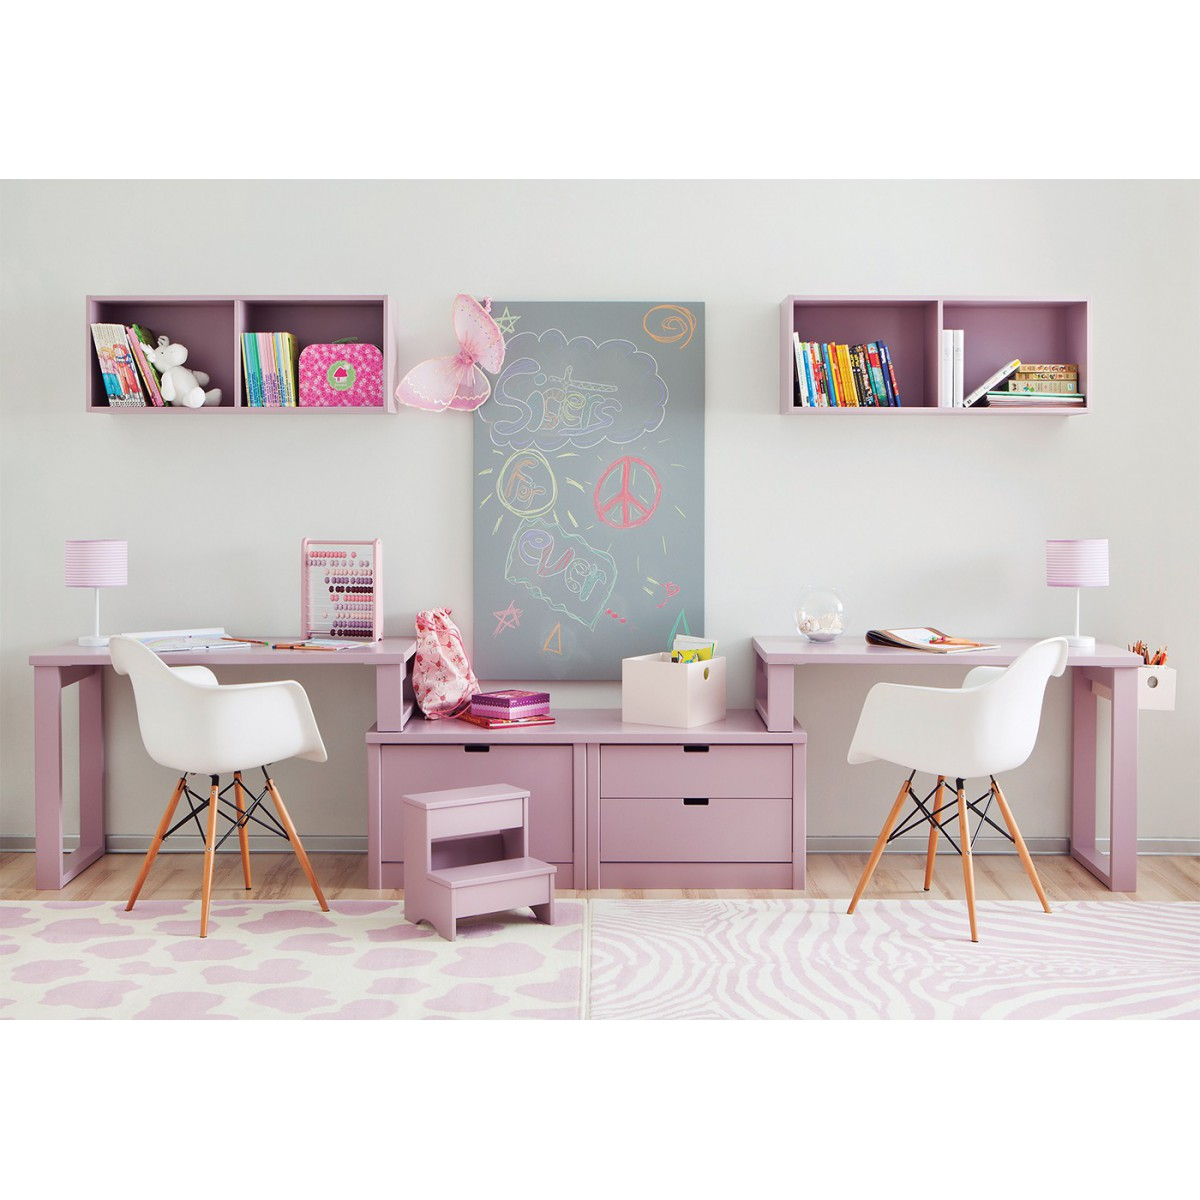 bureau enfant 2 ans bureau pour bebe 2 ans visuel 5. Black Bedroom Furniture Sets. Home Design Ideas